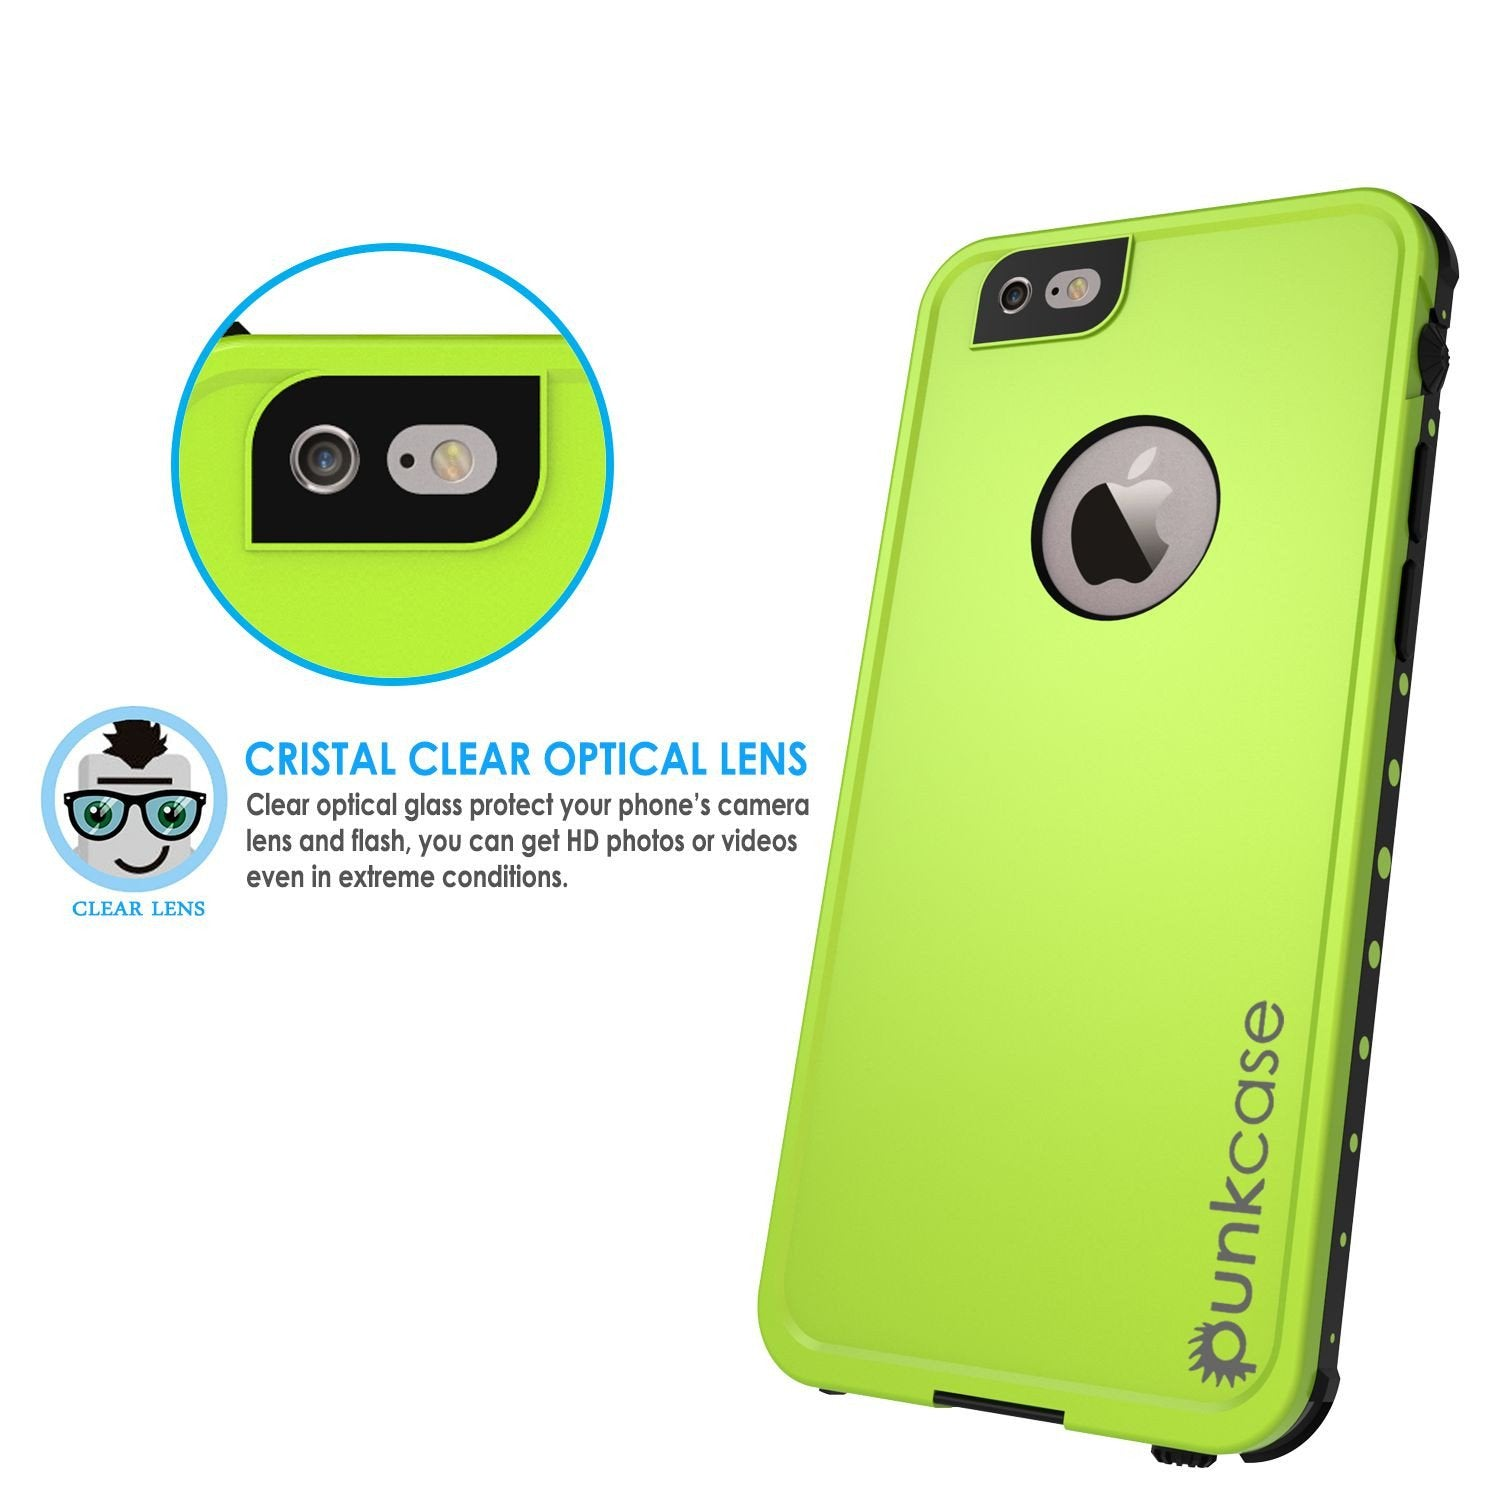 iPhone 6S+/6+ Plus Waterproof Case, PUNKcase StudStar Light Green w/ Attached Screen Protector